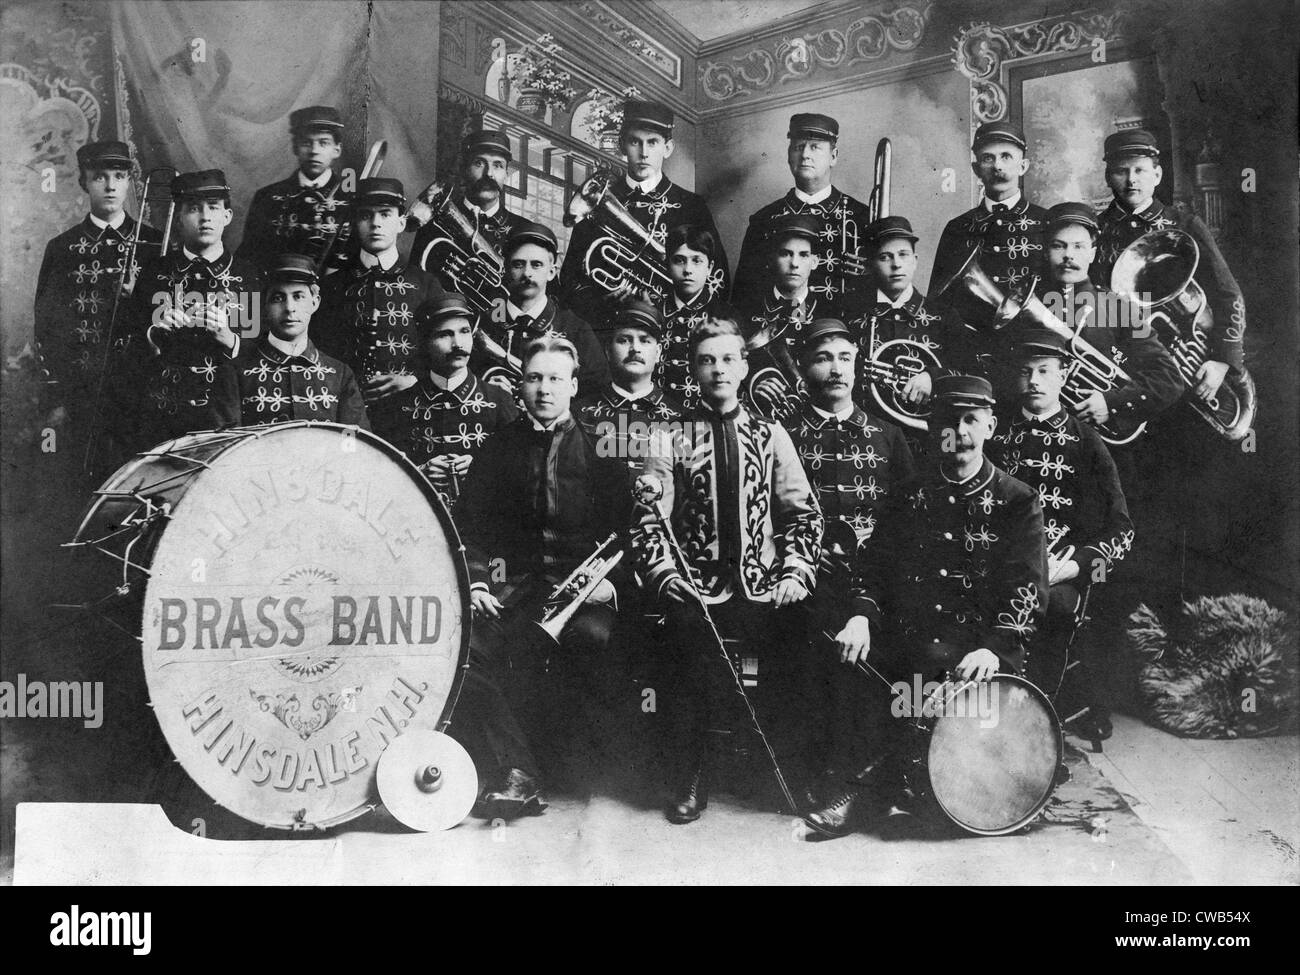 Hinsdale Brass Band, Hinsdale, New Hampshire, photograph, 1906. - Stock Image